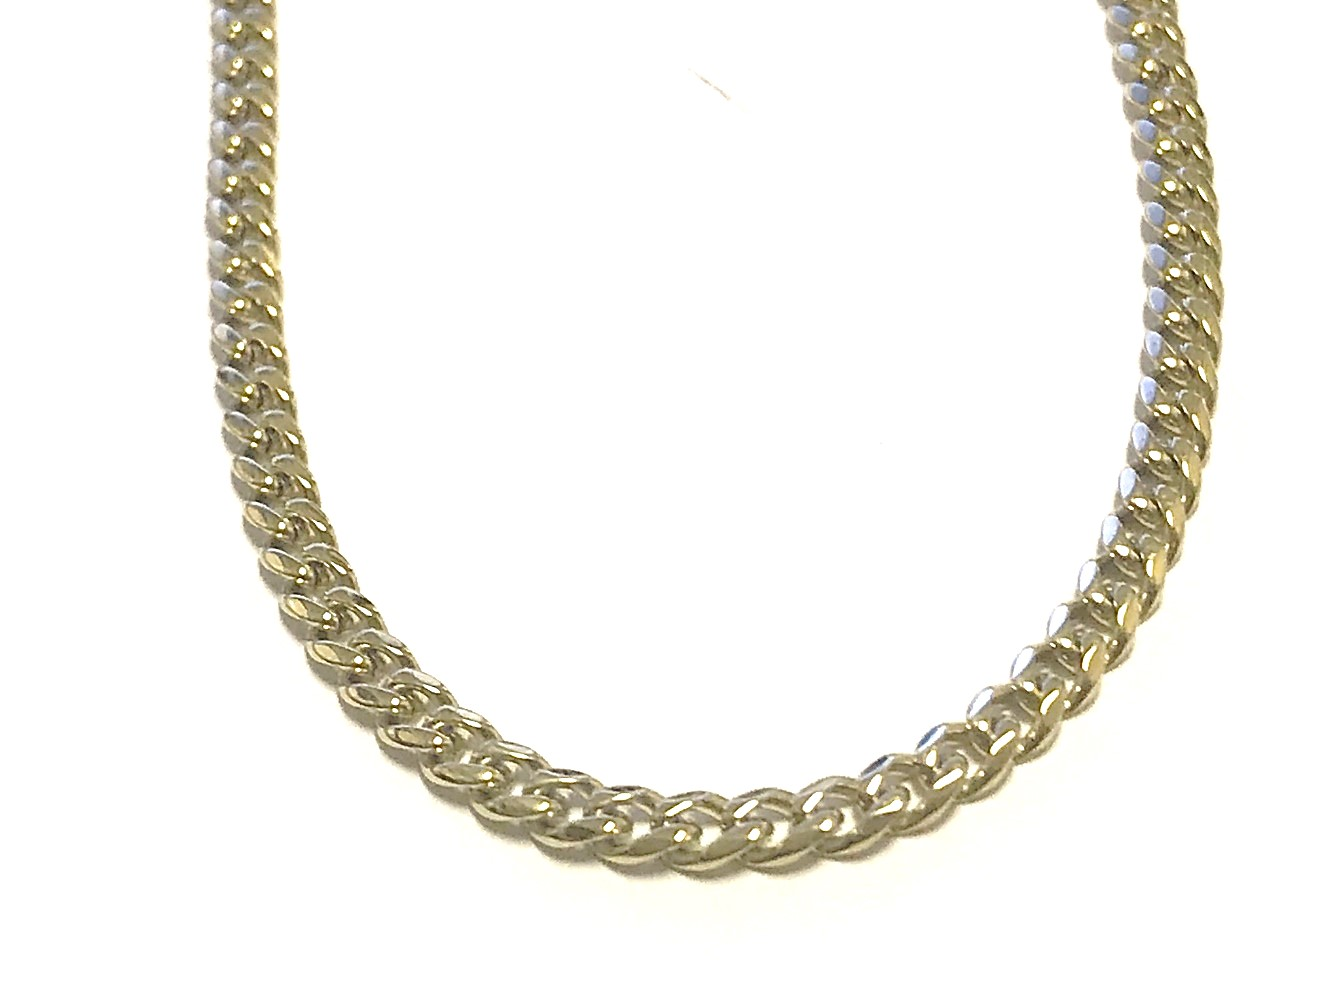 24'' Curb chain for men - Yellow stainless steel